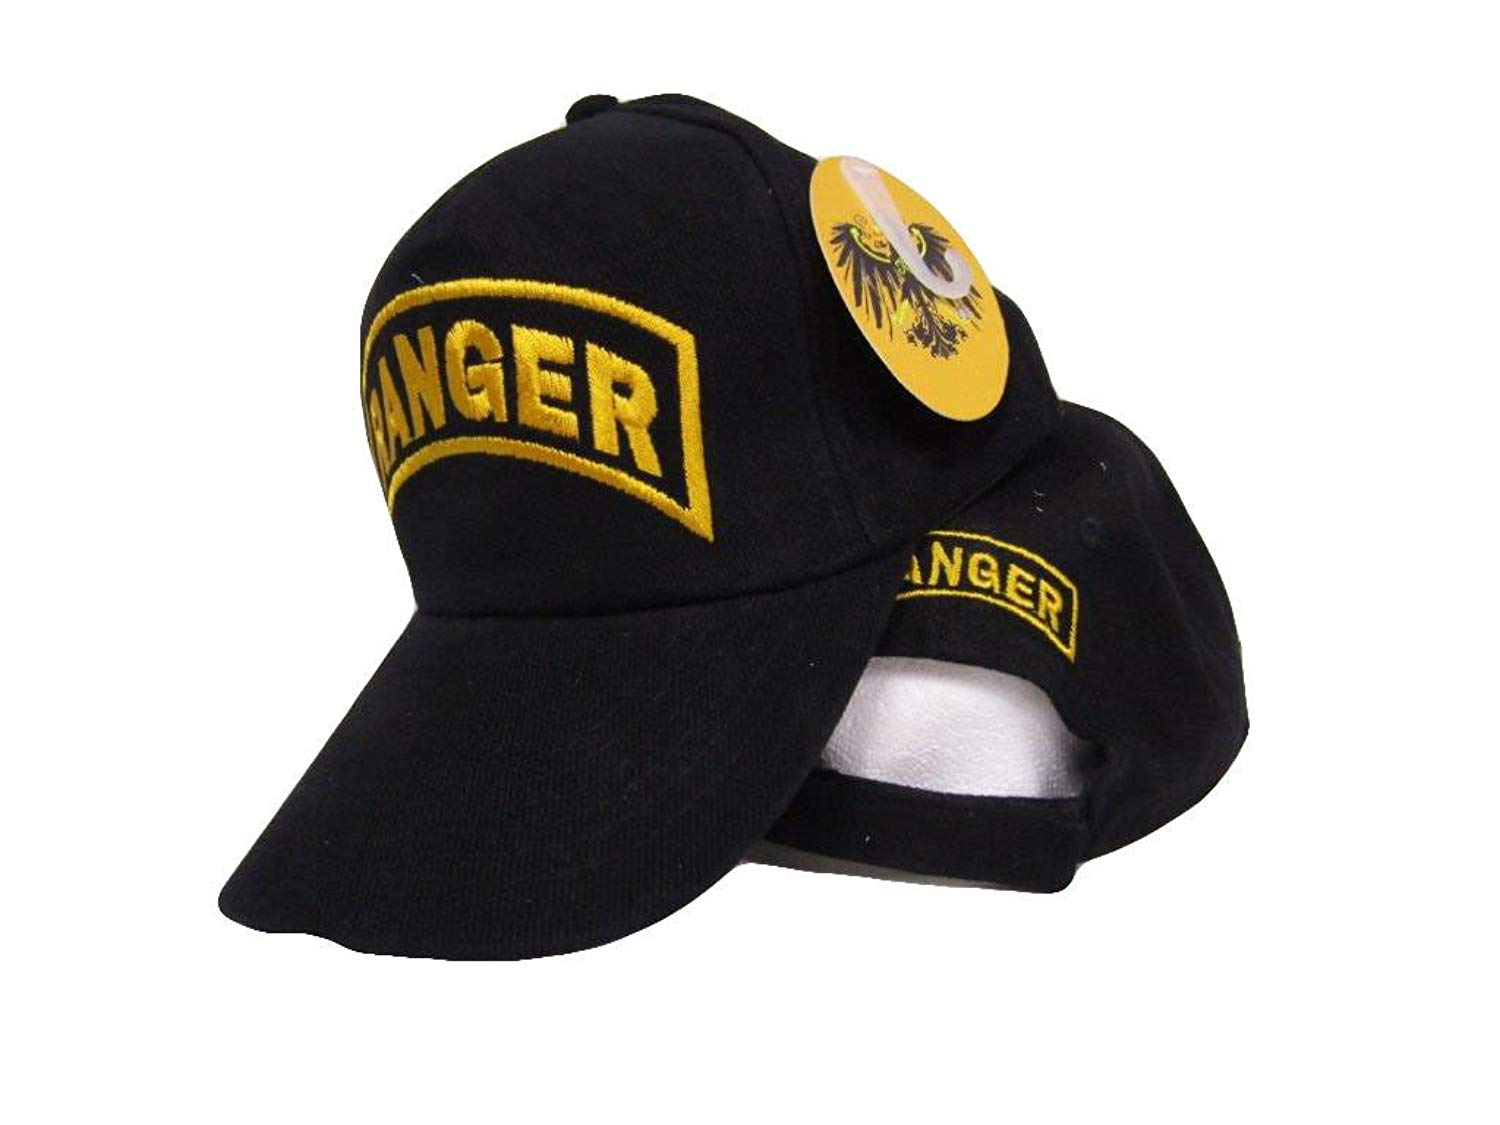 d7b830e6e230a Moon Army Ranger Gold Letters Embroidered Black Dad Hat Baseball Cap Cover Premium  Quality Dad Hat